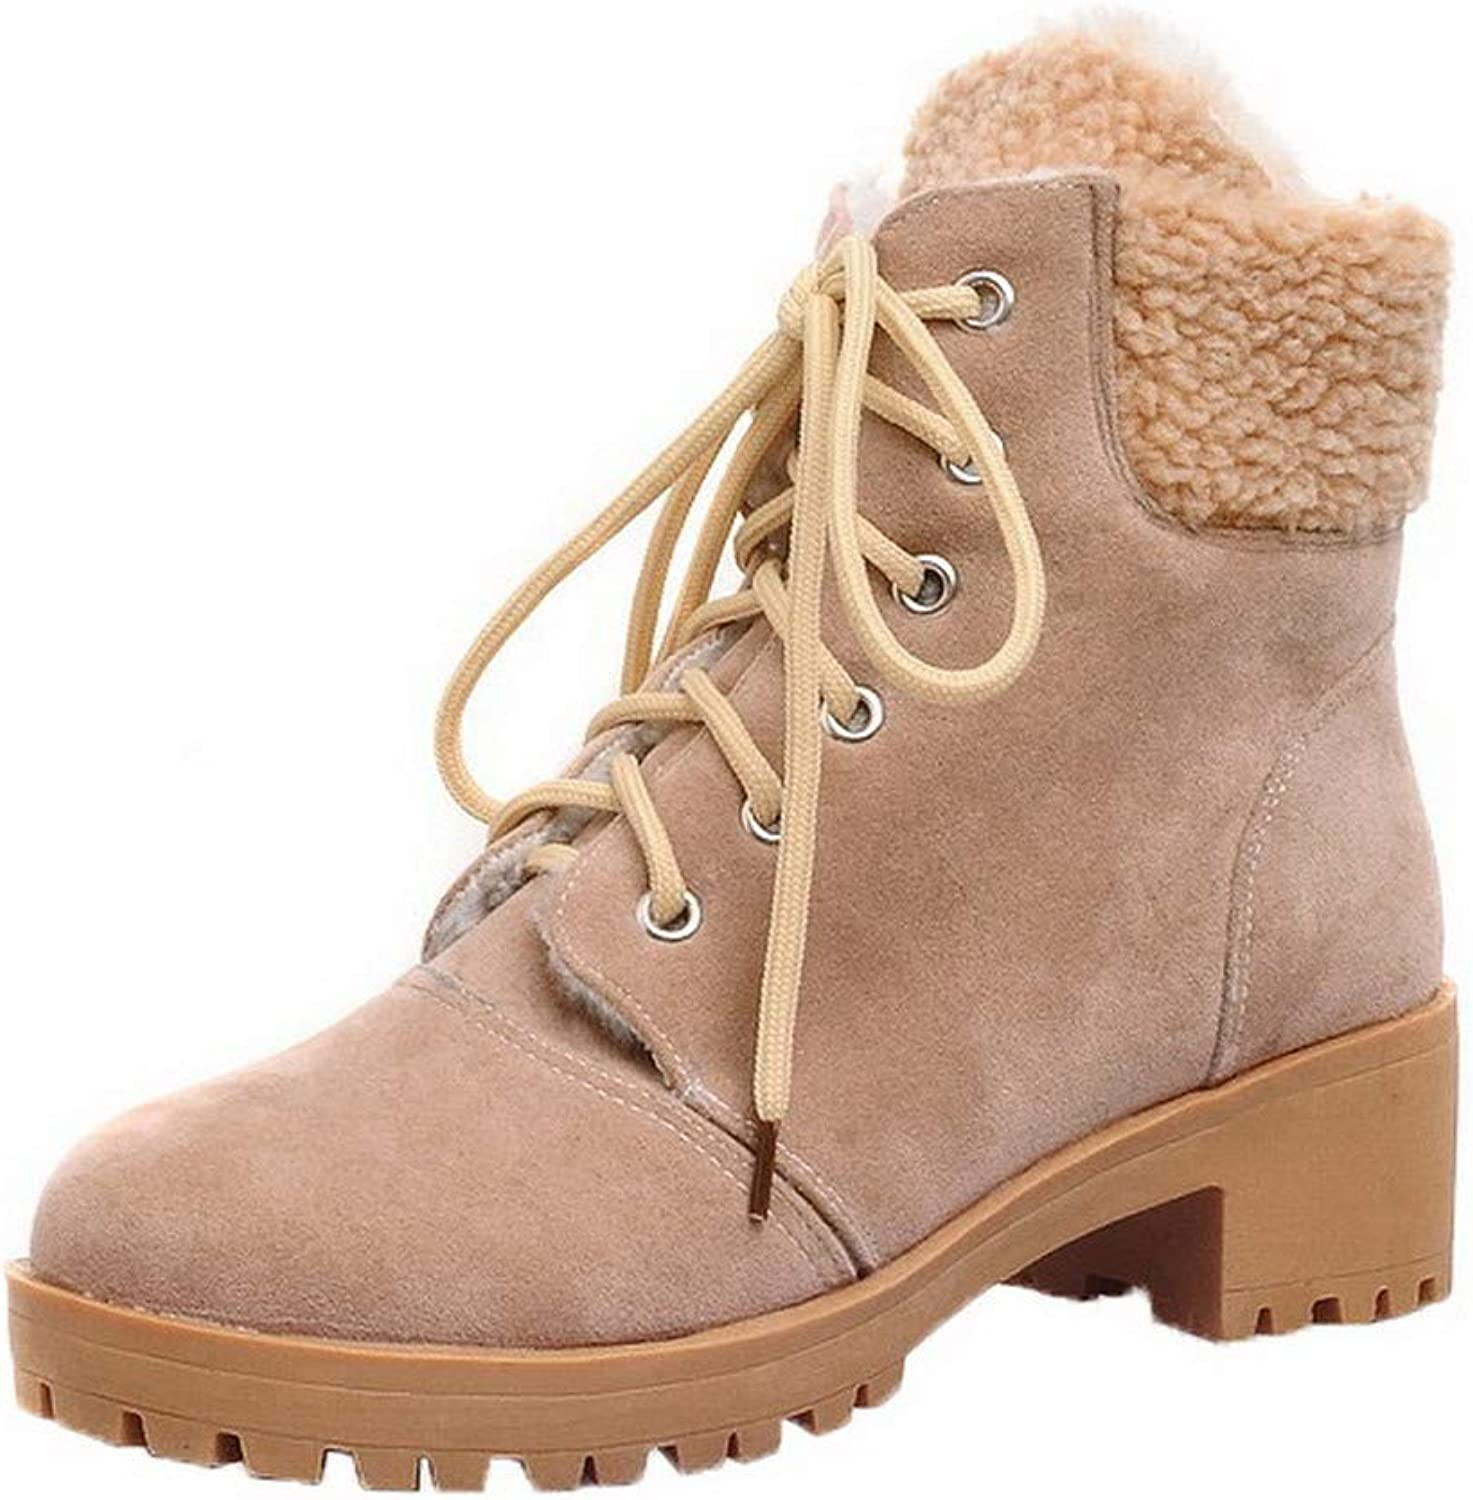 AmoonyFashion Women's Kitten-Heels Ankle-High Assorted color Lace-Up Boots, BUTXT023611